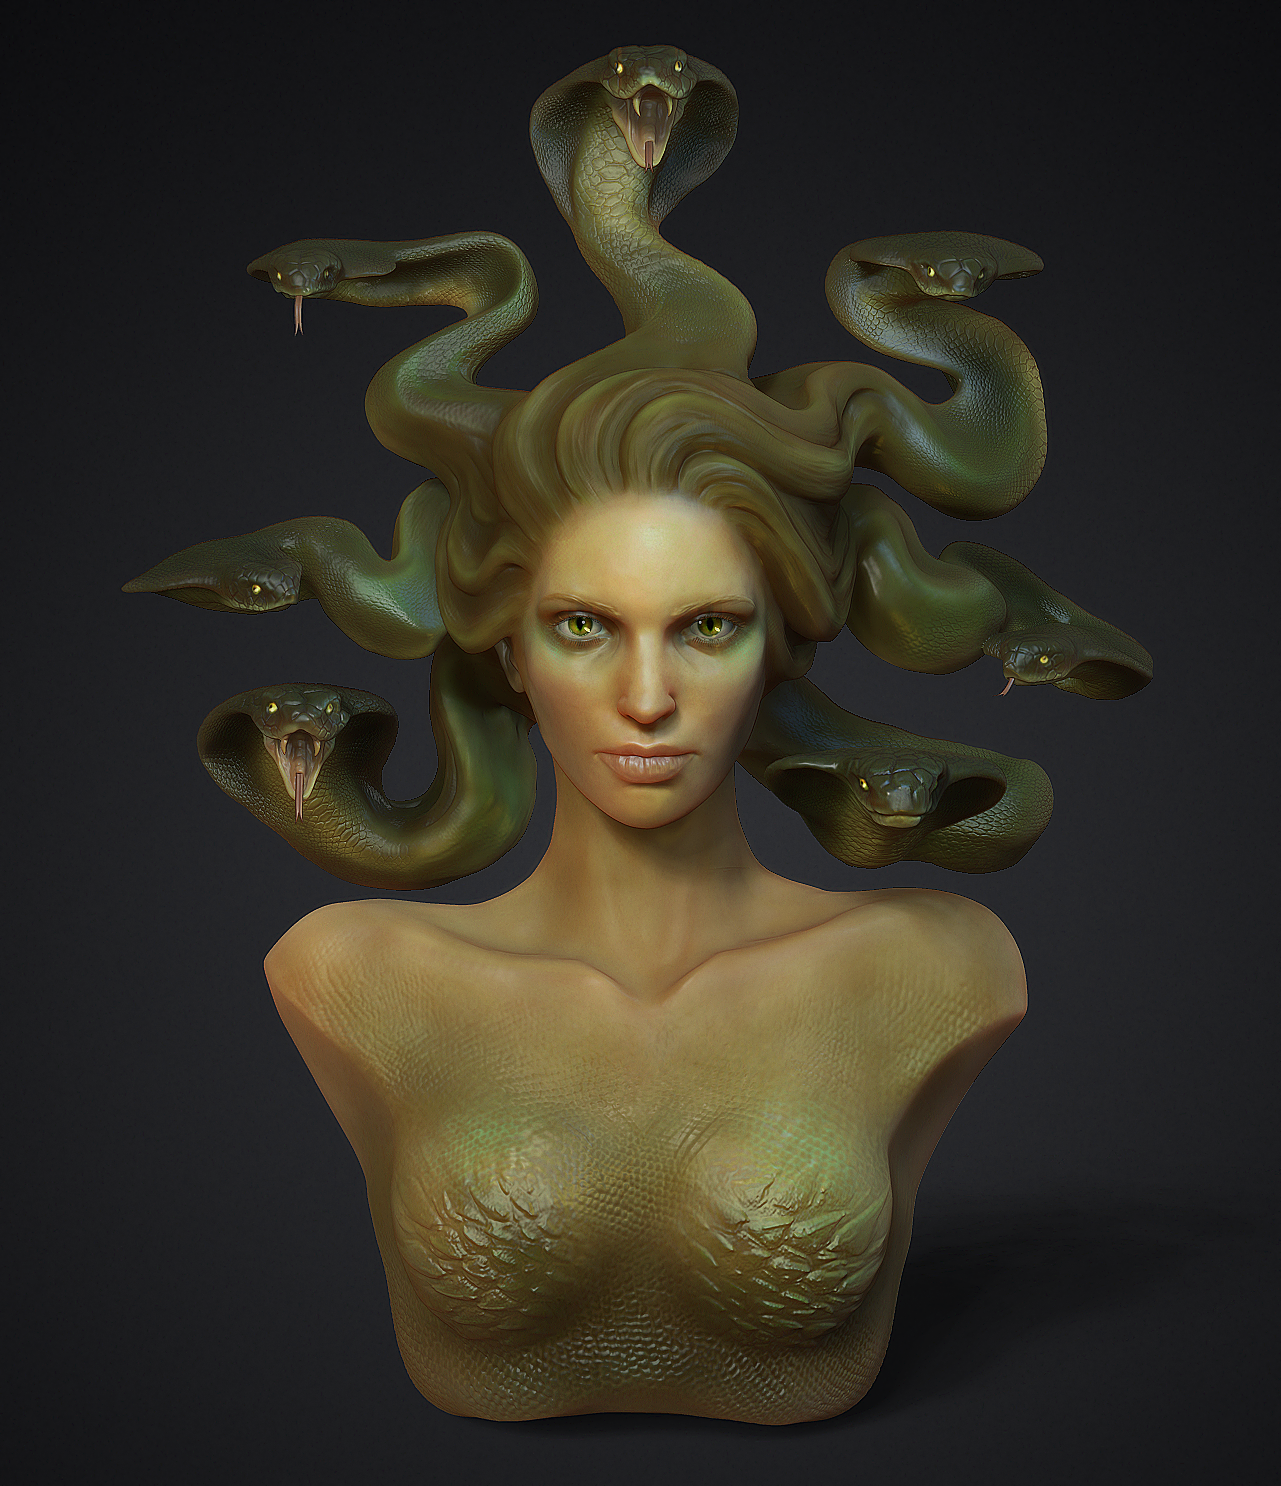 Rendering Images in Zbrush This Final Image Was Rendered